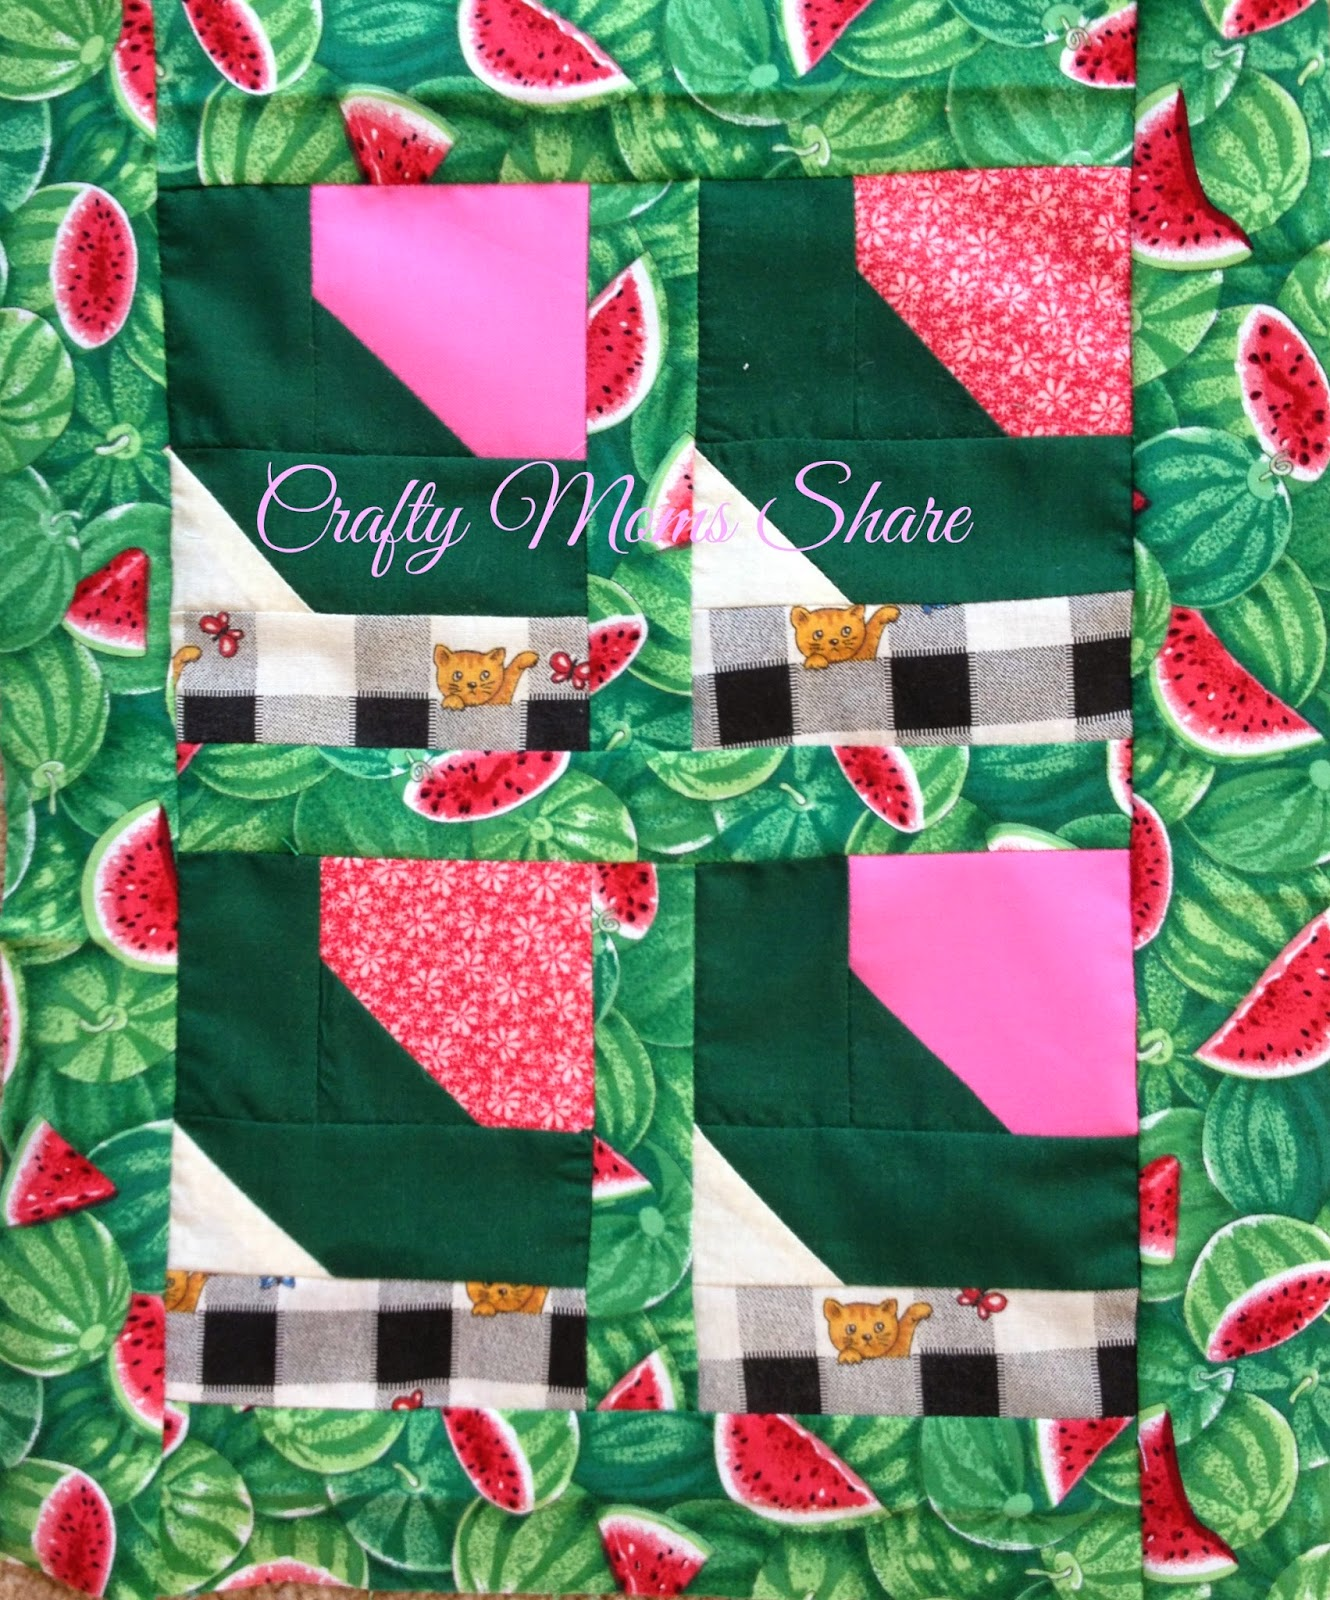 Crafty Moms Share: Fruit Exploration: Watermelon with a Quilt : watermelon quilt - Adamdwight.com